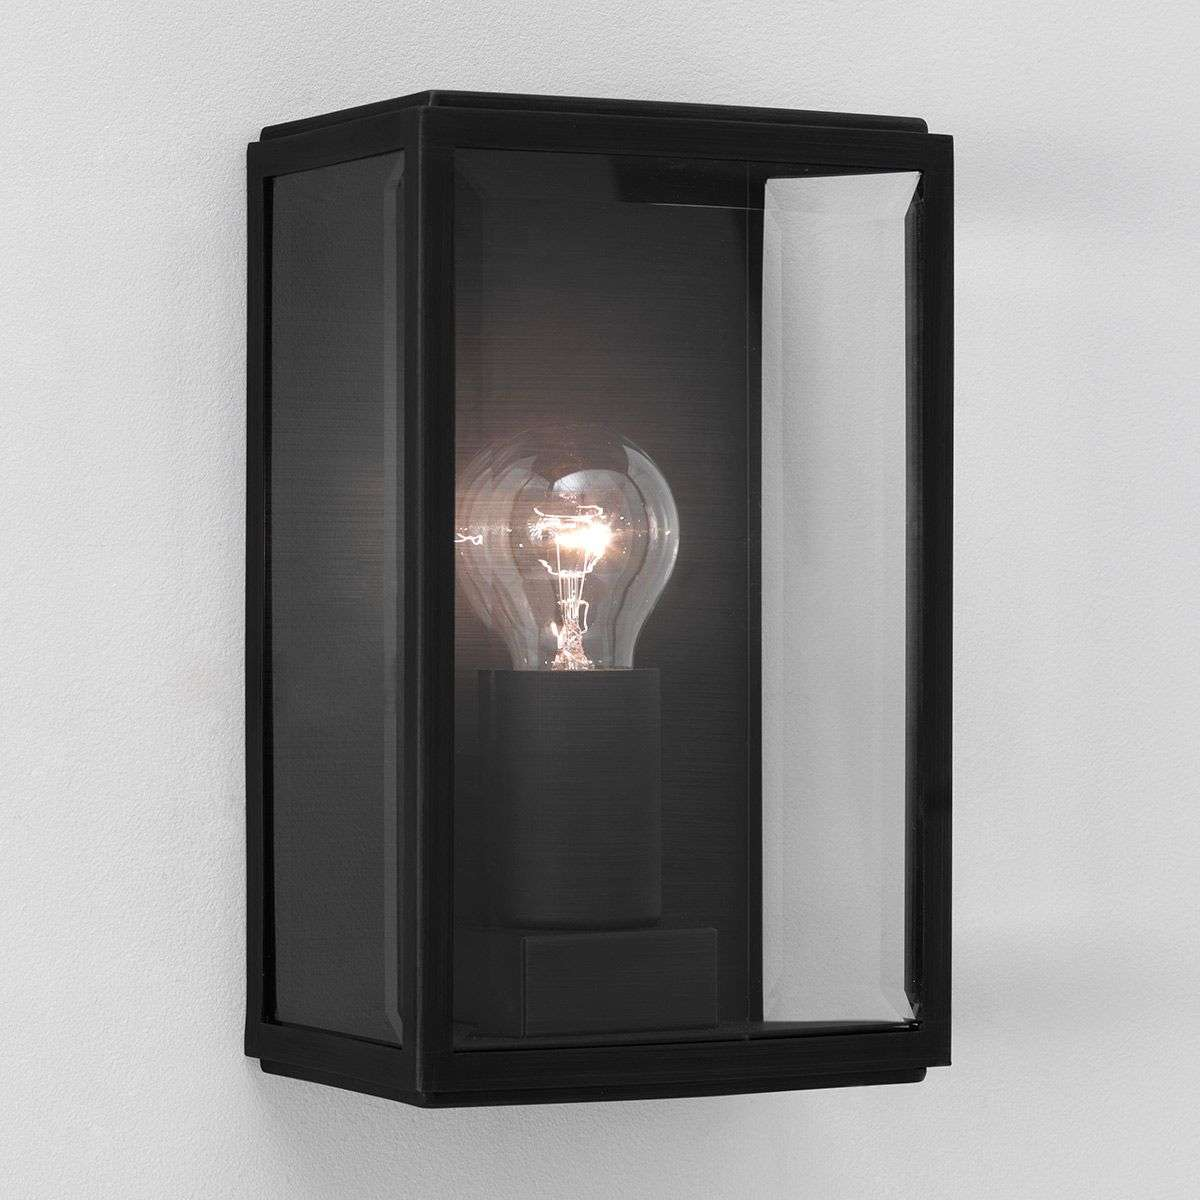 Homefield Square outside wall light decorative-1020281X-33